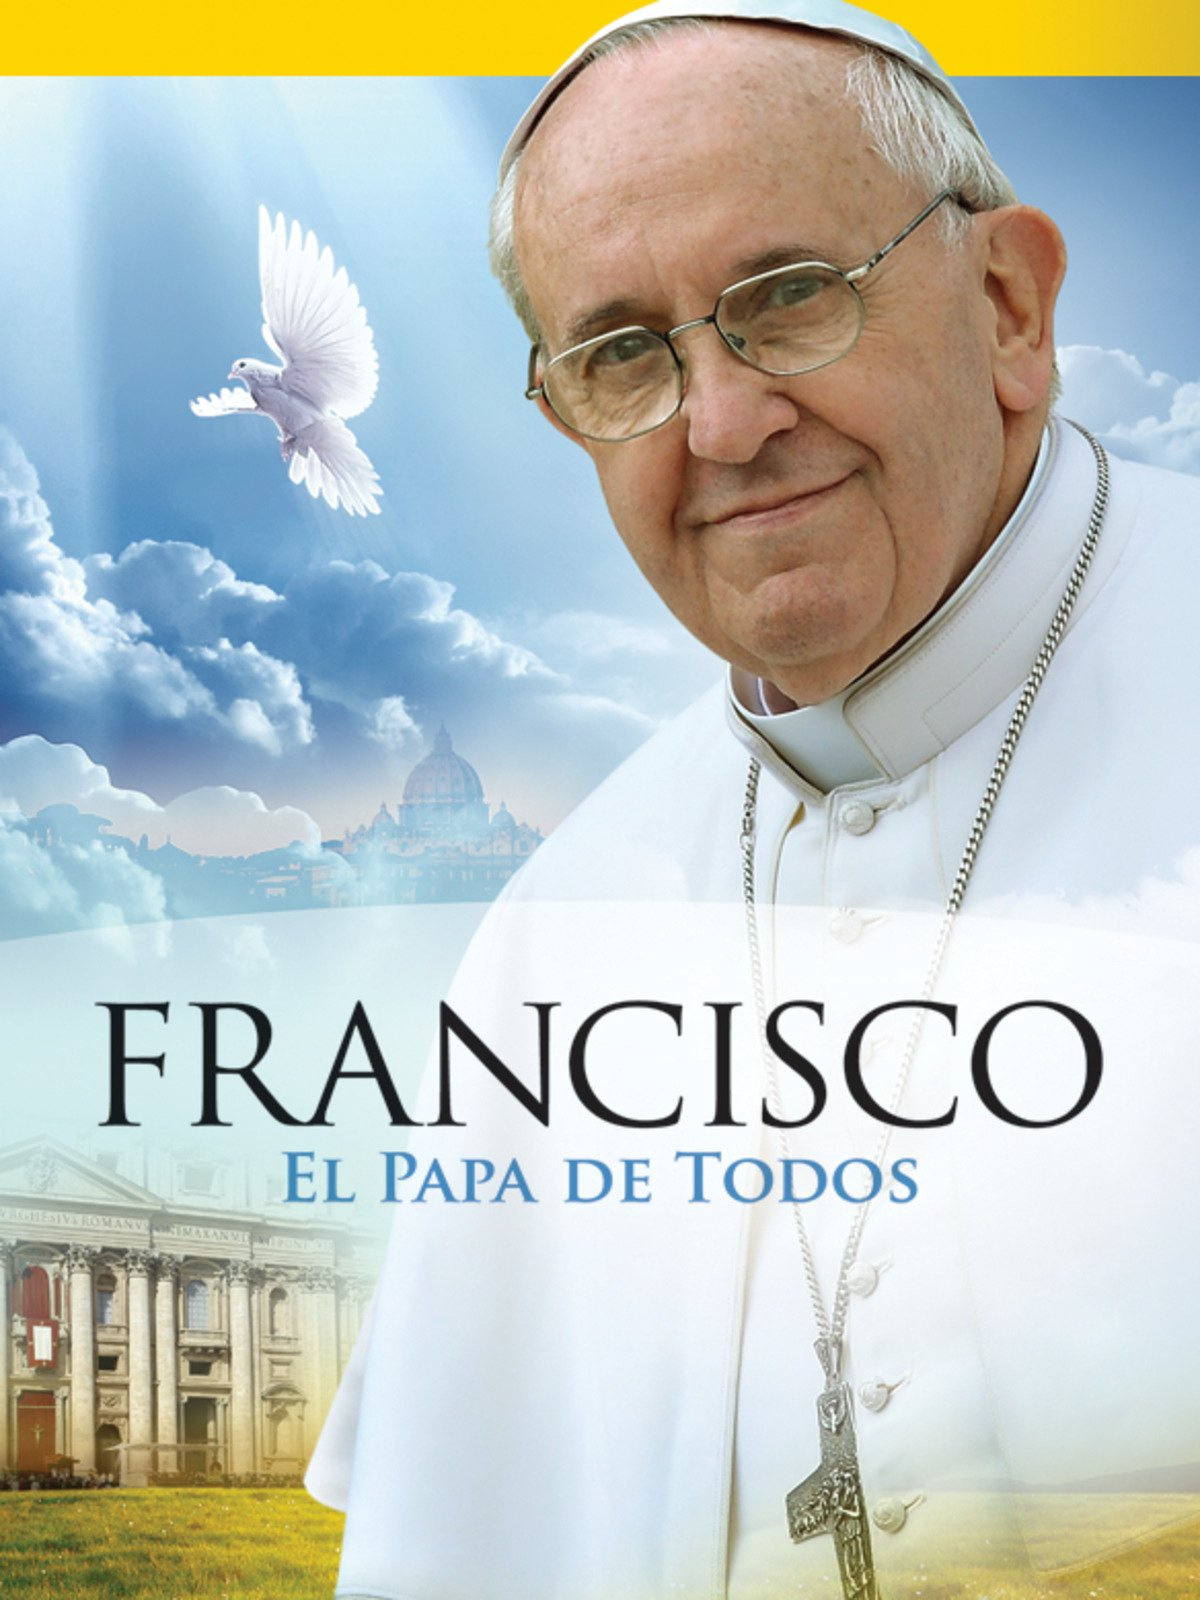 Francisco - El Papa de Todos on Amazon Prime Instant Video UK